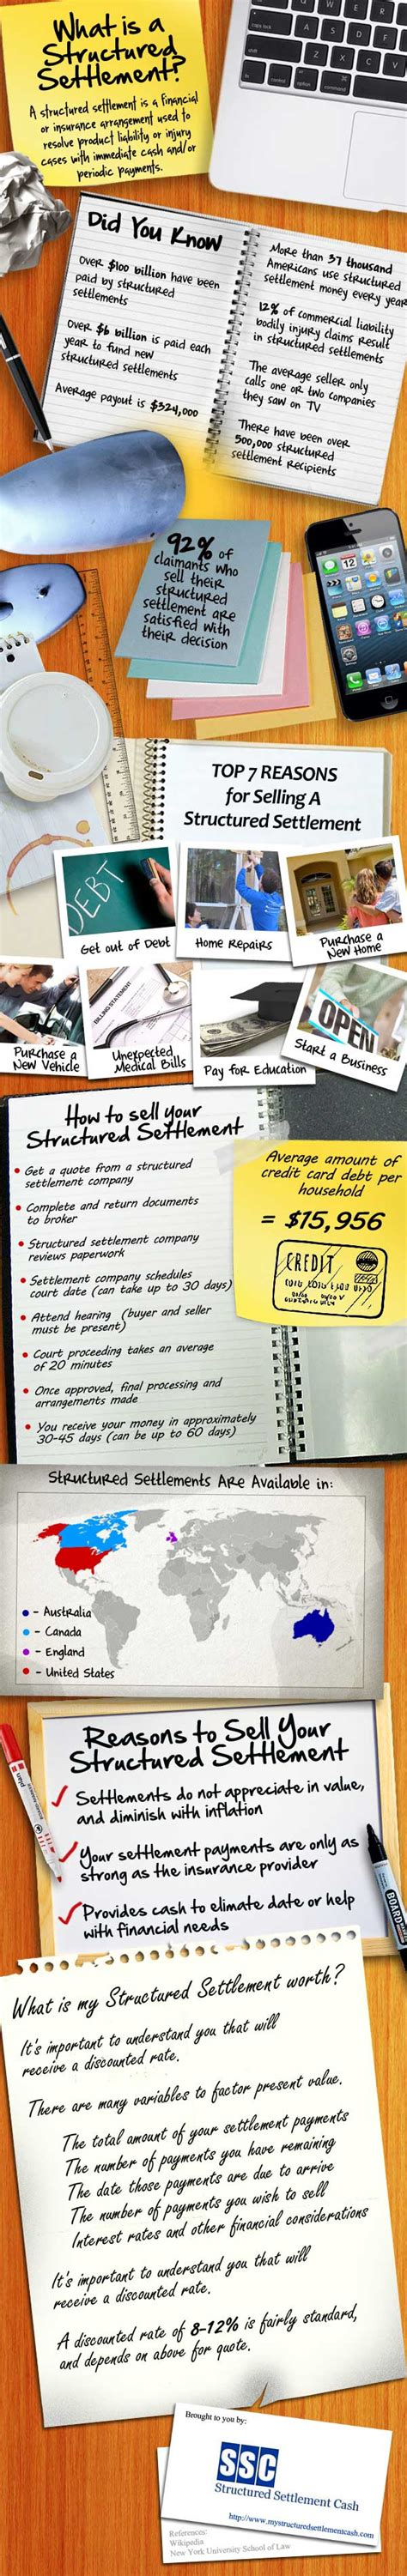 What Is A Structured Settlement?. Wireless Security Systems Kraft Shopping Bags. Remote Access Home Security Systems. Creative Mortgage Lending Venture Capital Crm. San Diego Online College Rent A Mailing List. Direct Tv Package Options Bph Treatment Drugs. Remote Desktop Command Line Hsa Tax Benefits. Auto Insurance Without Credit Check. Penetration Testing Costs Phoenix To Avondale